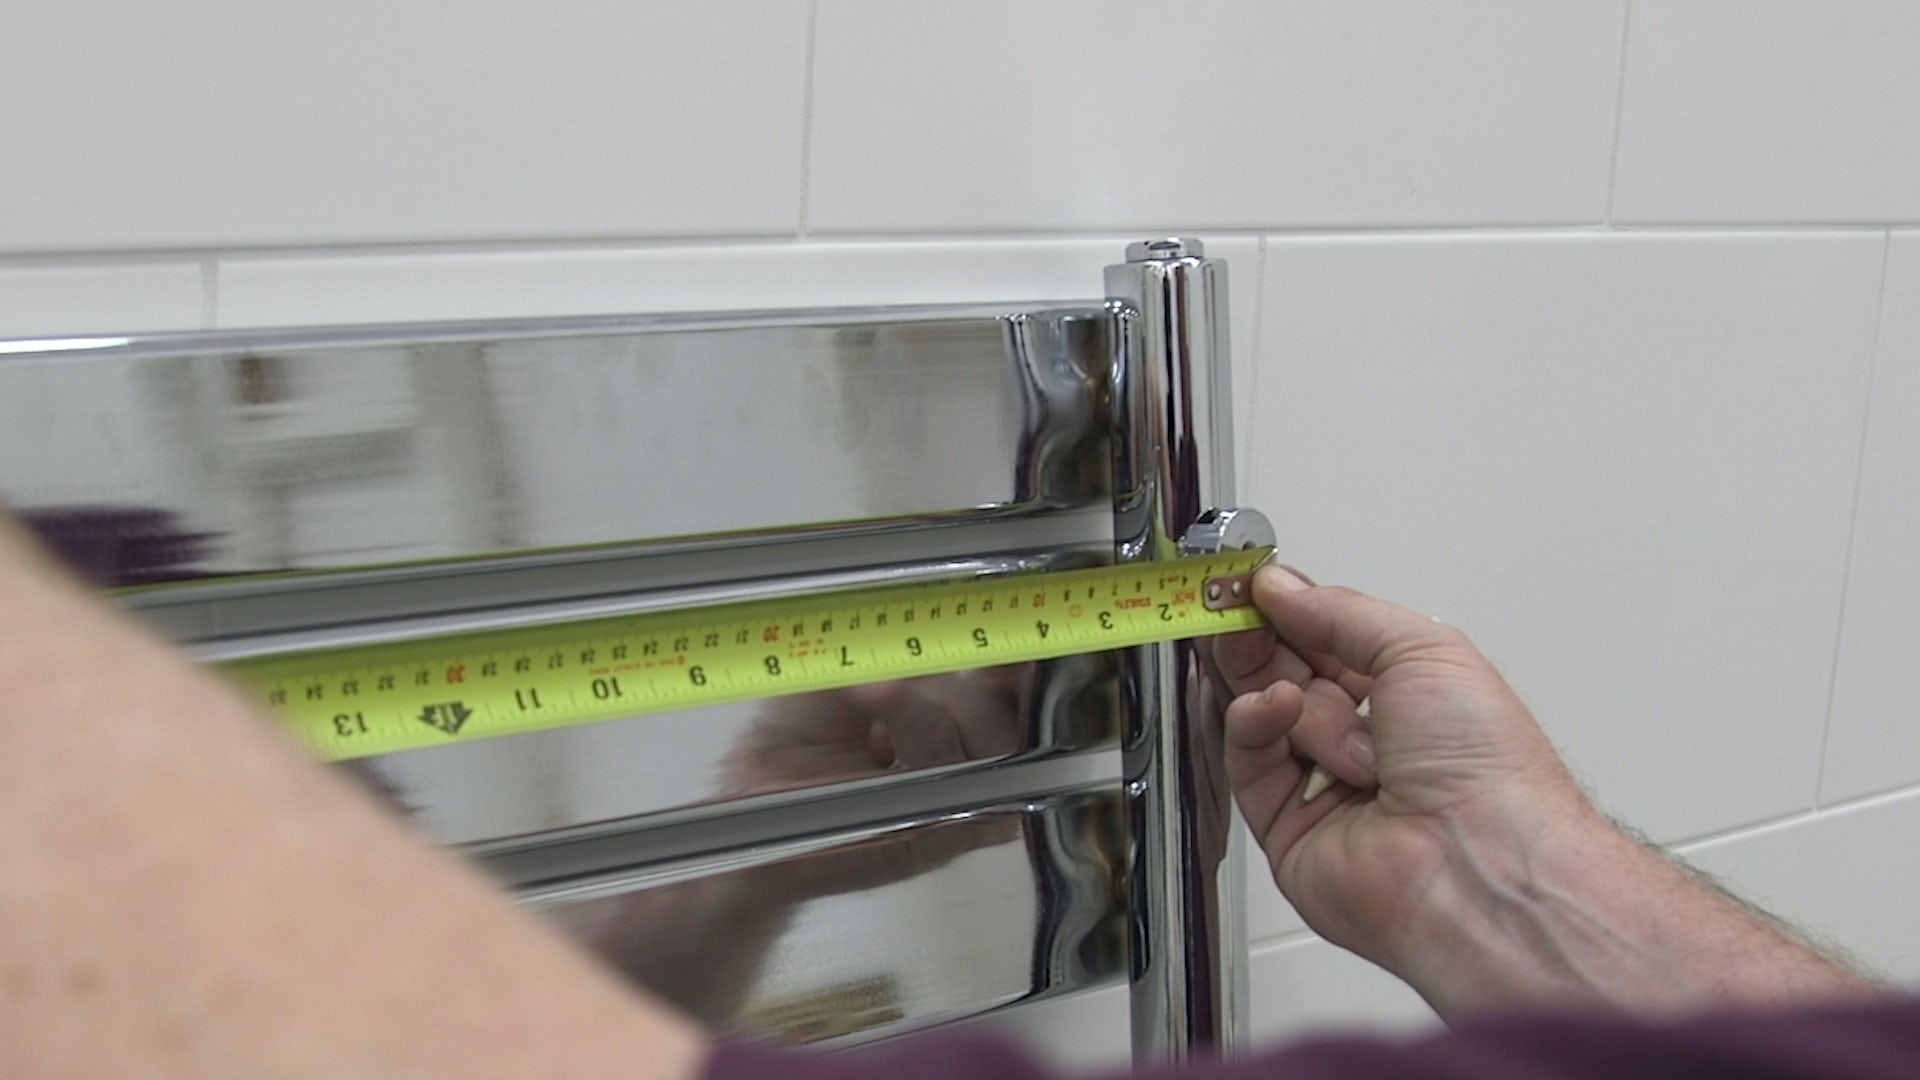 Measuring the distance between the bolt holes